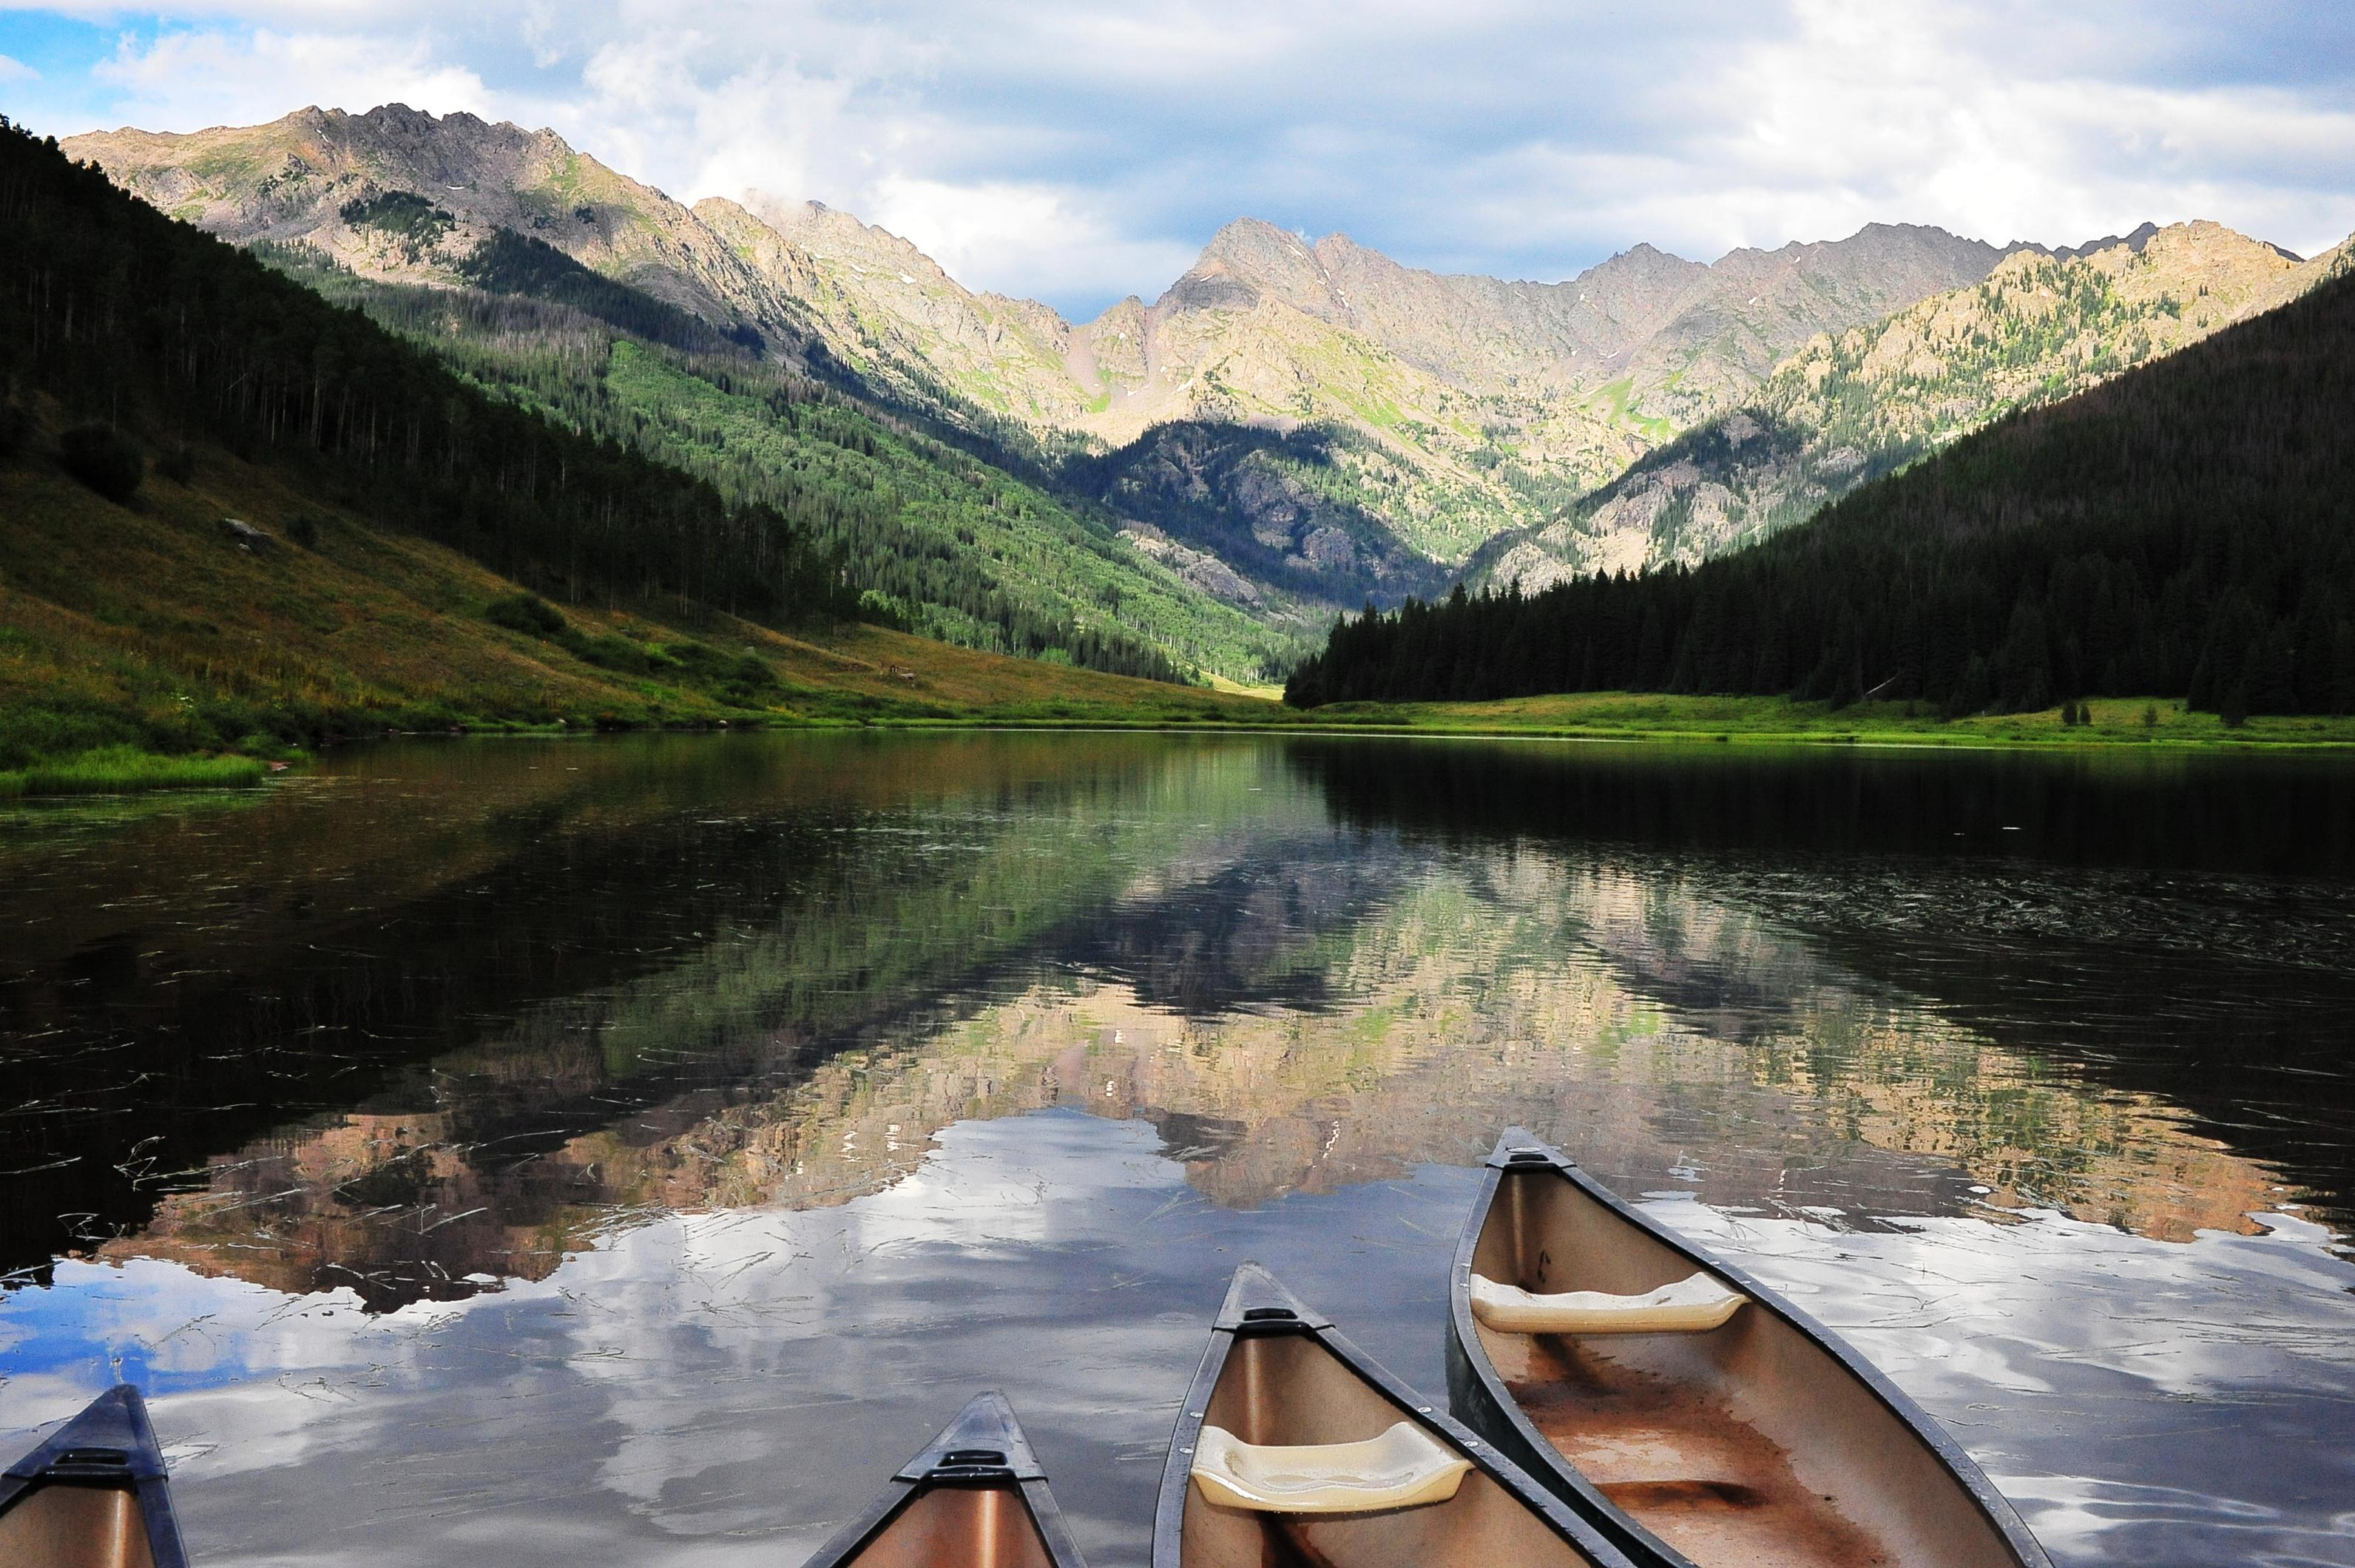 Summer activities in Vail include spending time on the water in a kayak or canoe.